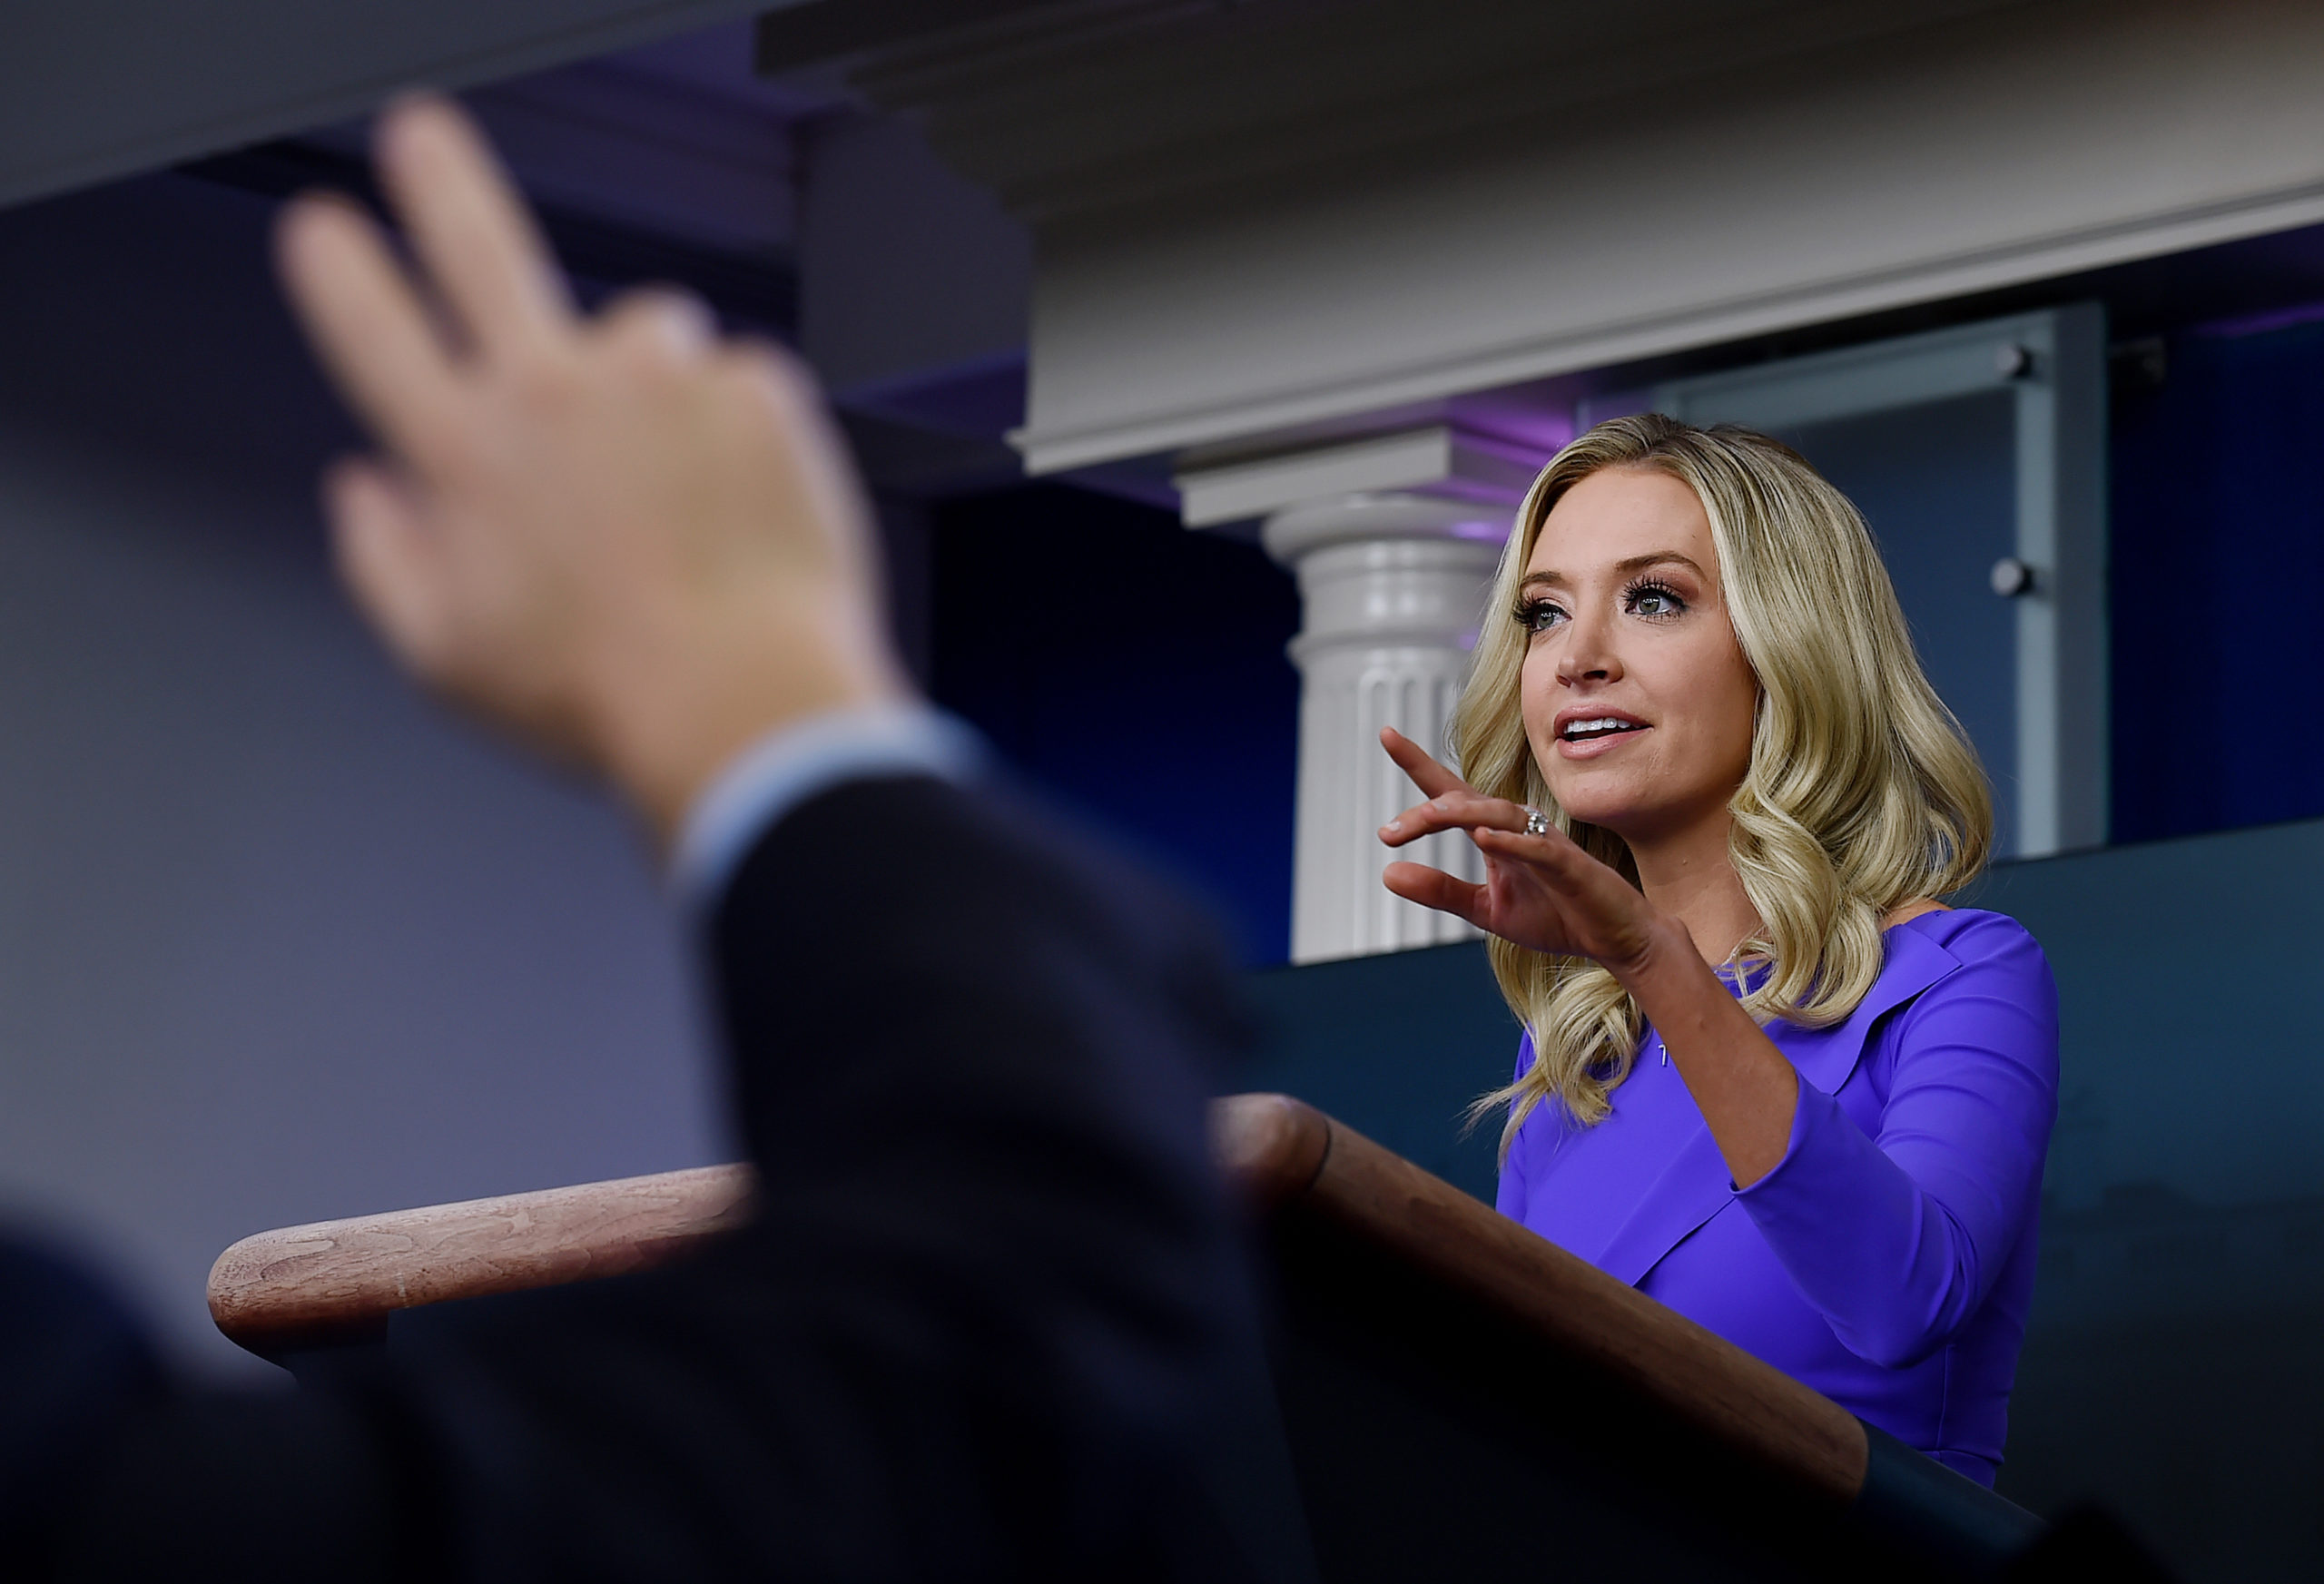 White House Press Secretary Kayleigh McEnany speaks during a press briefing on December 15, 2020, in the Brady Briefing Room of the White House in Washington, DC. (Photo by OLIVIER DOULIERY/AFP via Getty Images)